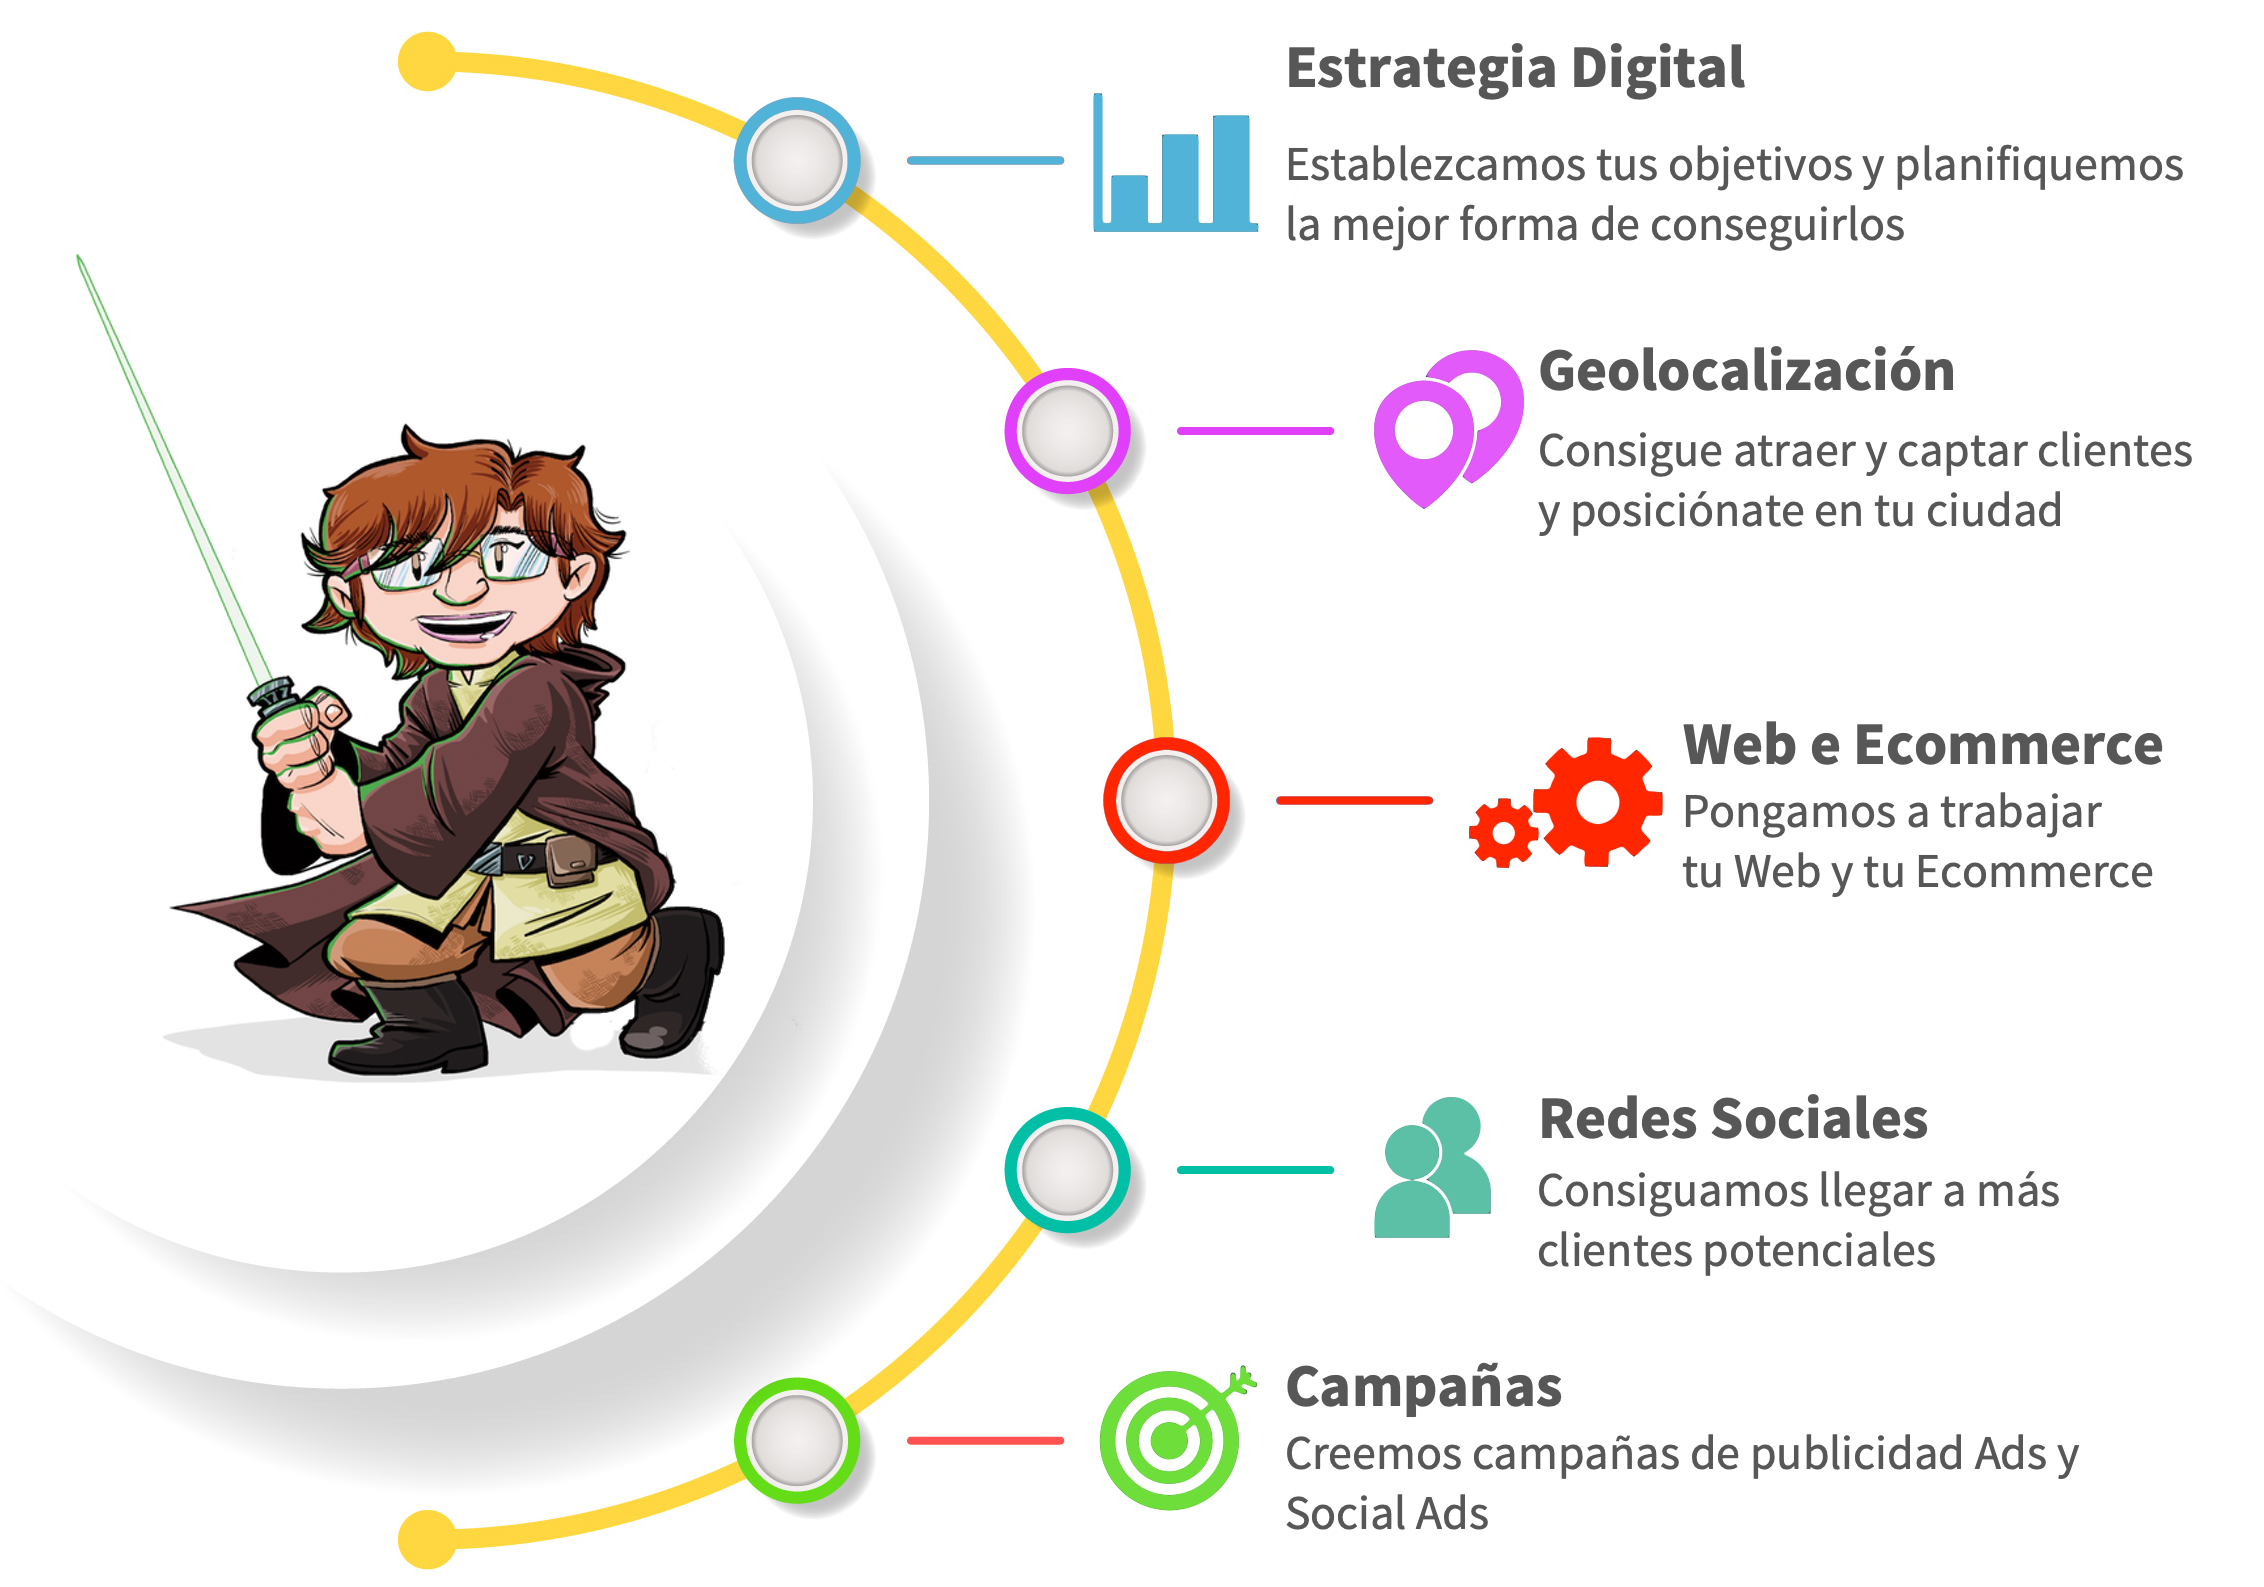 REDES SOCIALES, SOCIAL MEDIA, MARKETING DIGITAL